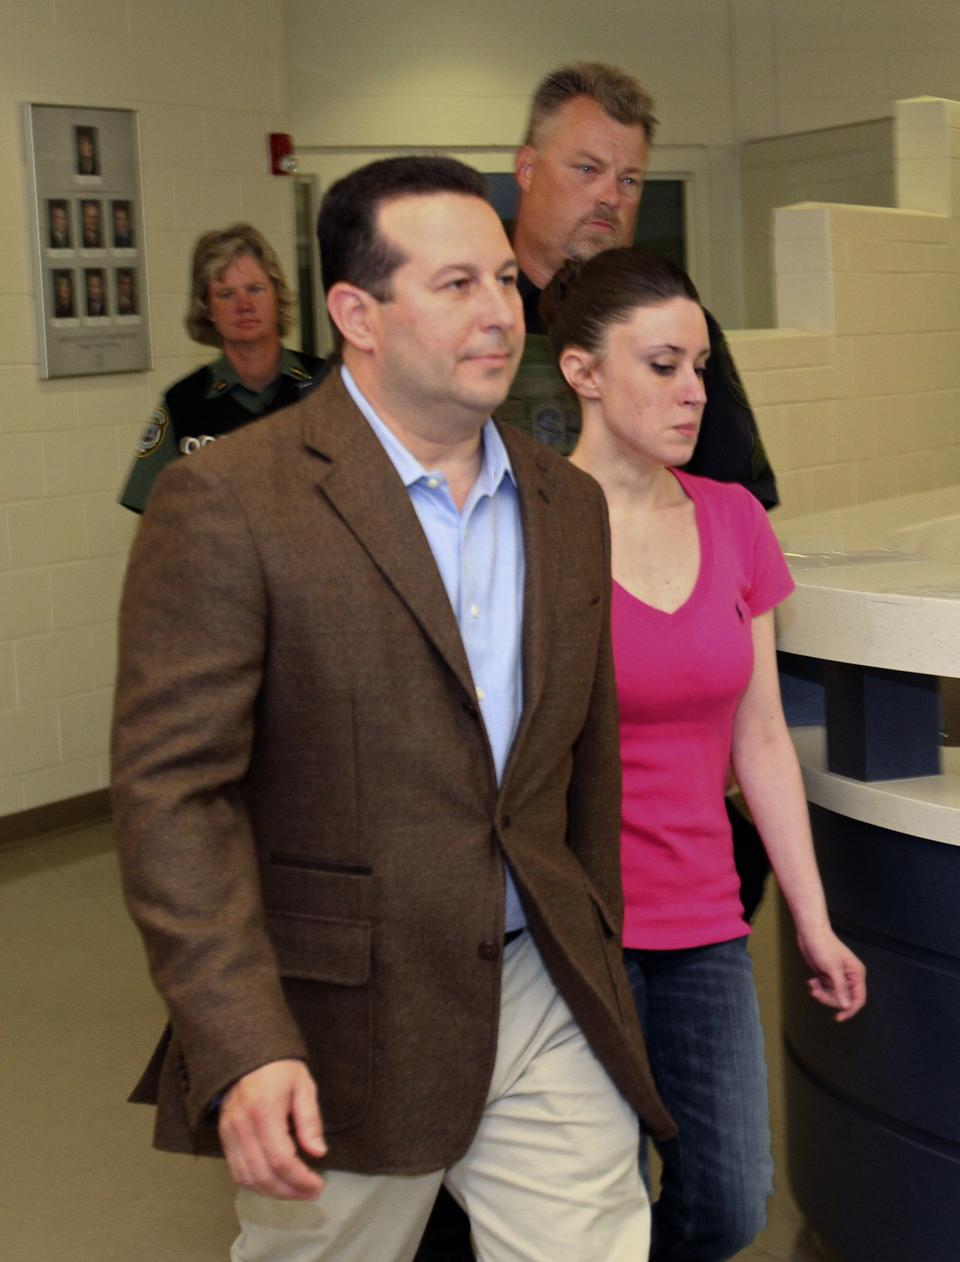 Casey Anthony, front, walks out of the   the Orange County Jail with her attorney Jose Baez, left,  during her release in Orlando, Fla., early Sunday, July 17, 2011.  Anthony was acquitted last week of murder in the death of her daughter, Caylee. (AP Photo/Red Huber, Pool)